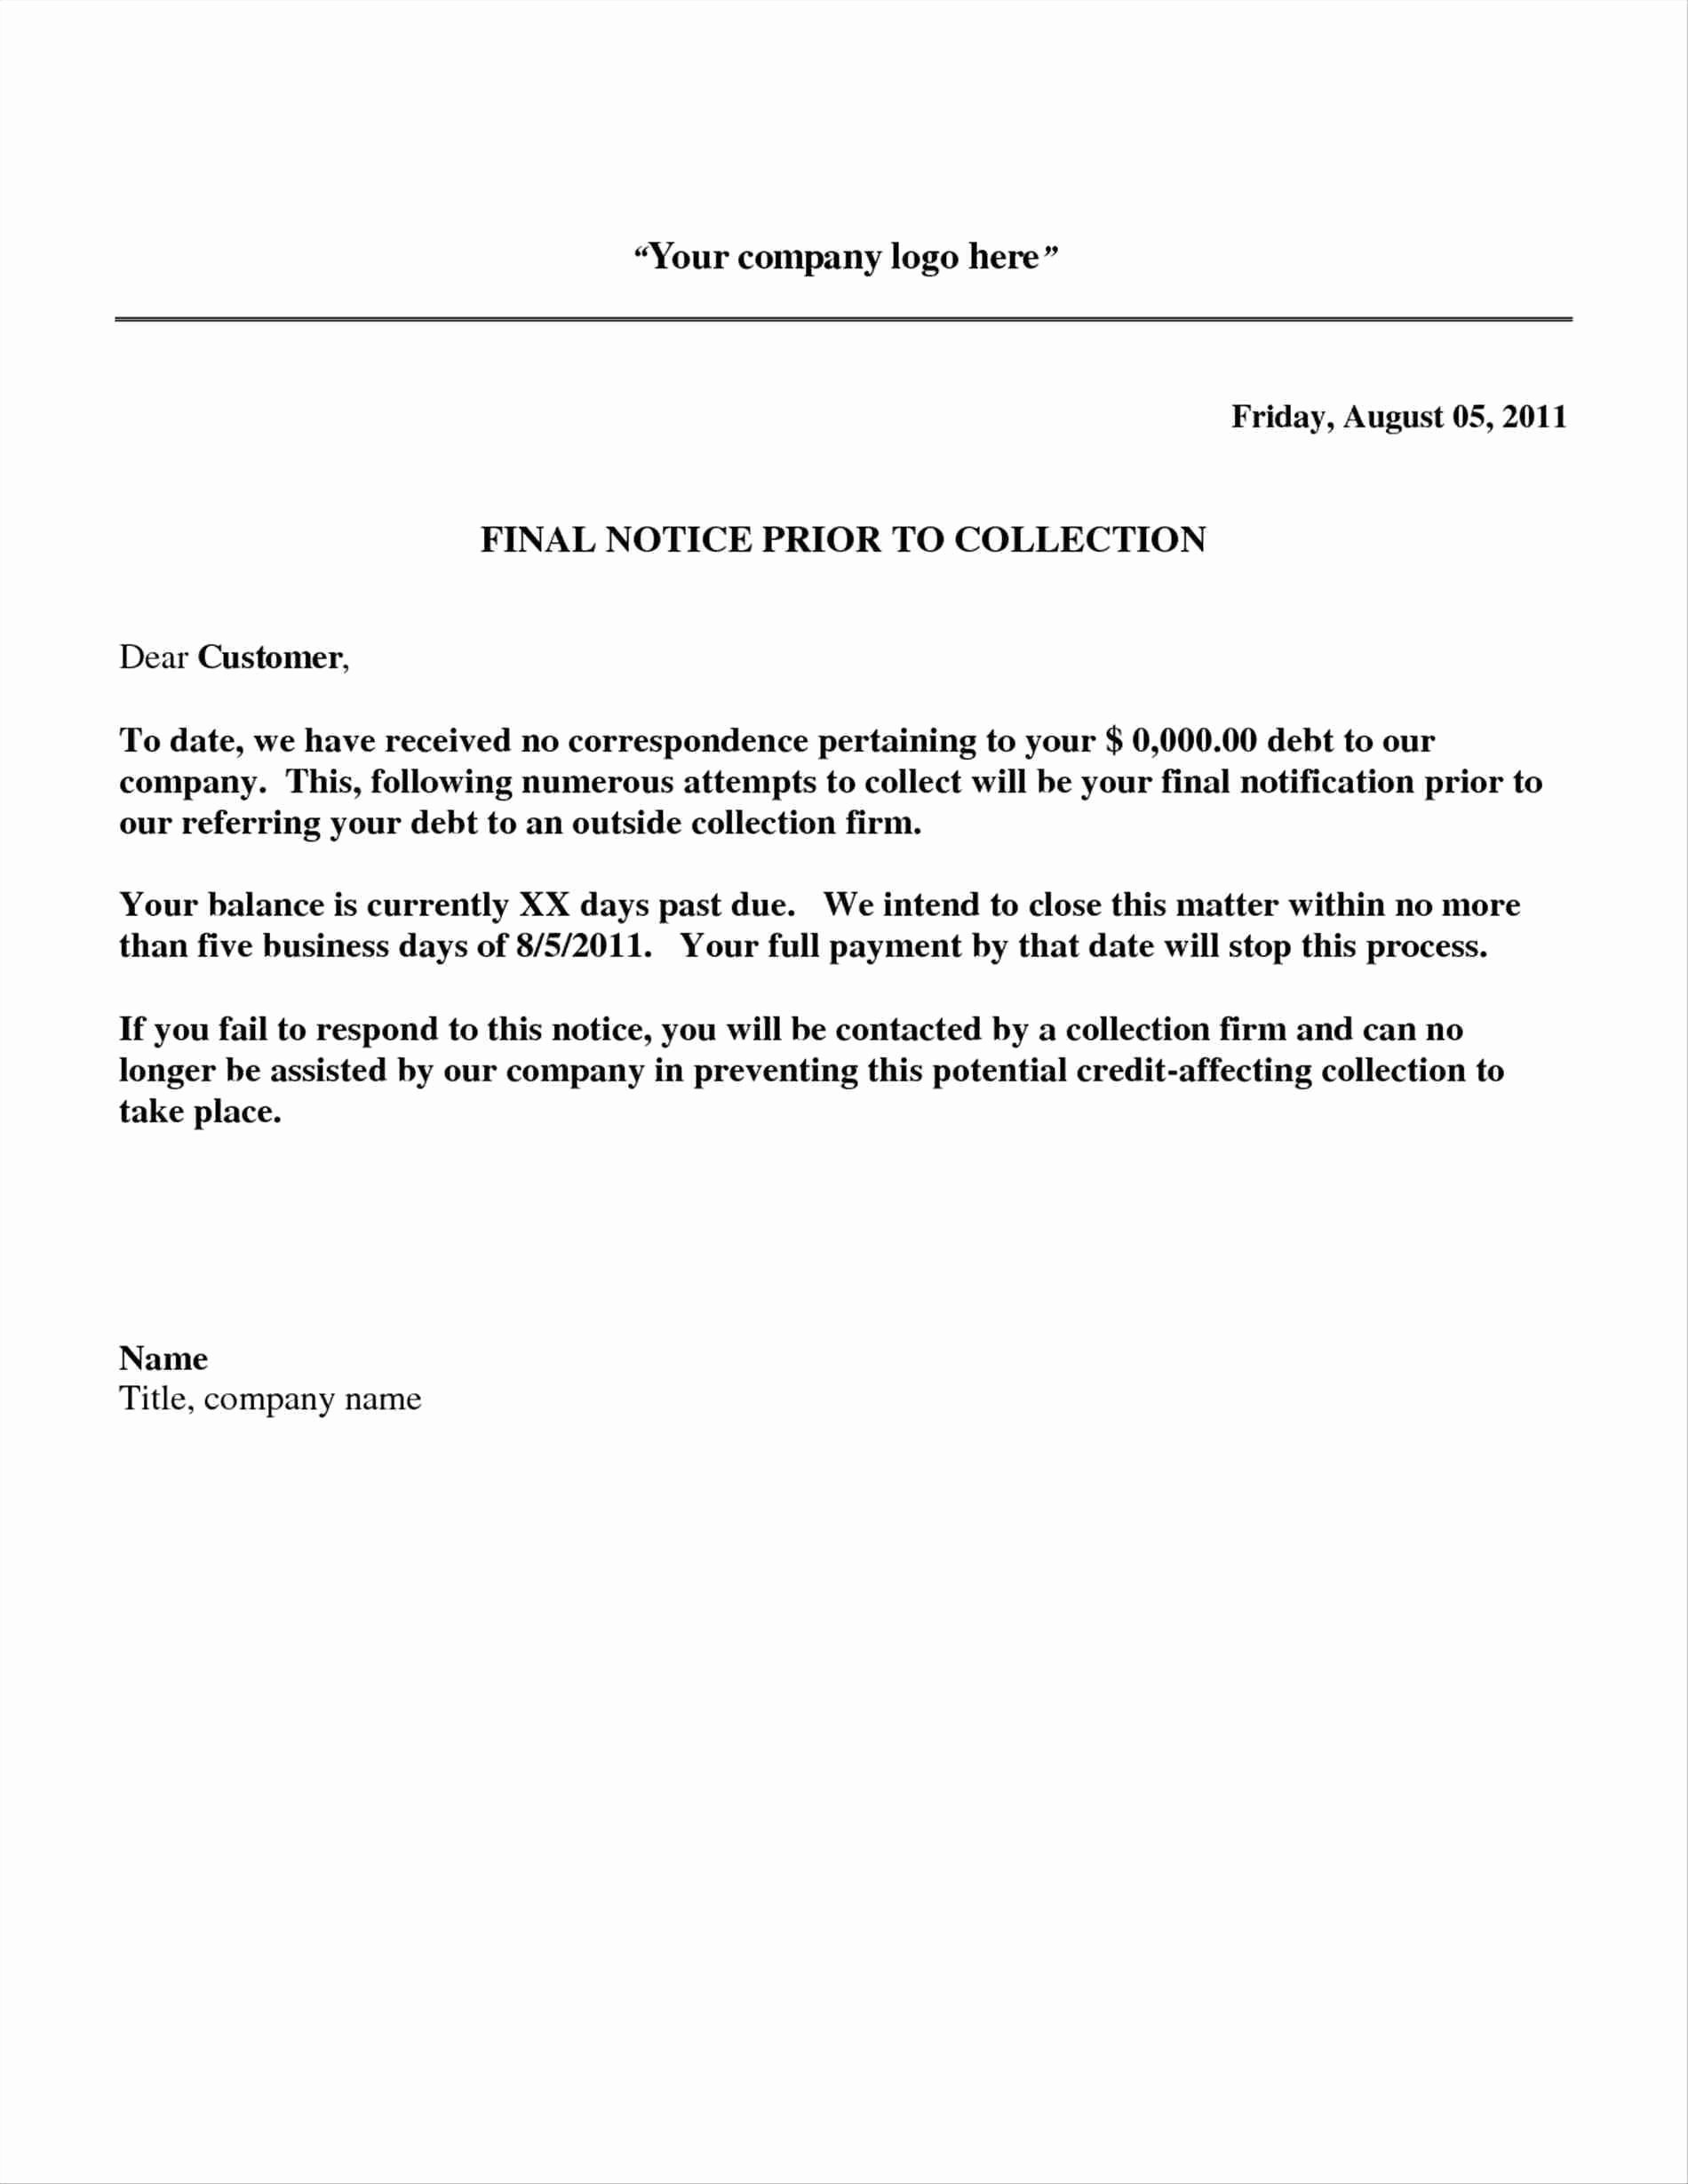 Collection Letter Template Final Notice Lovely Debt Collection Template Letter Free Download